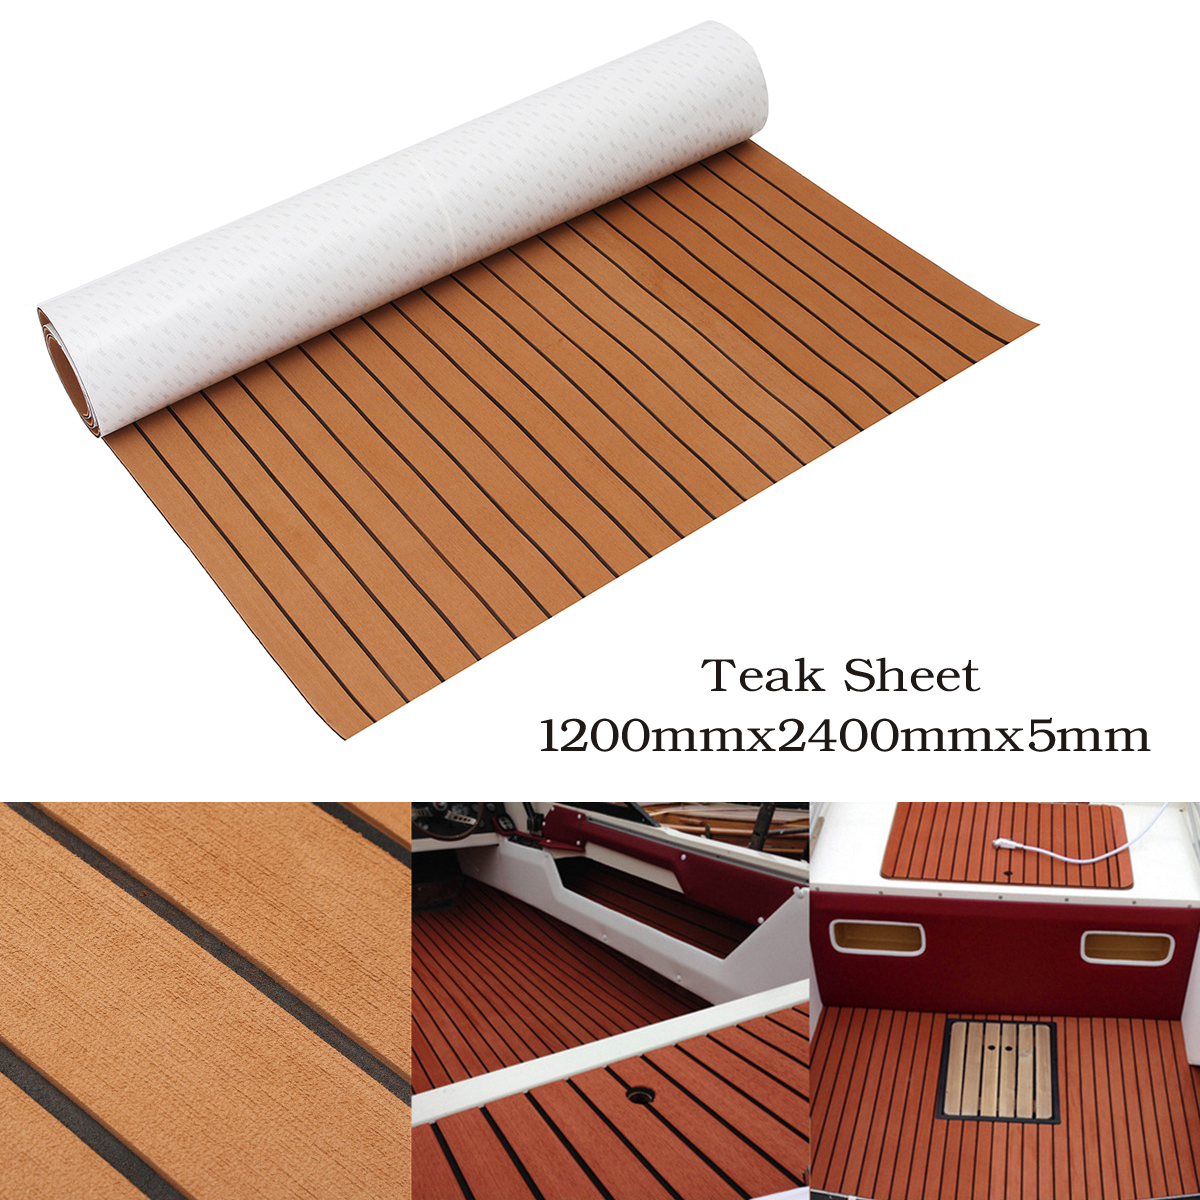 1200mmx2400mmx5mm EVA Foam Faux Teak Sheet Self Adhesive Teak Sheet Boat Yacht Synthetic Teak Decking Floor Mat teak house комод maori